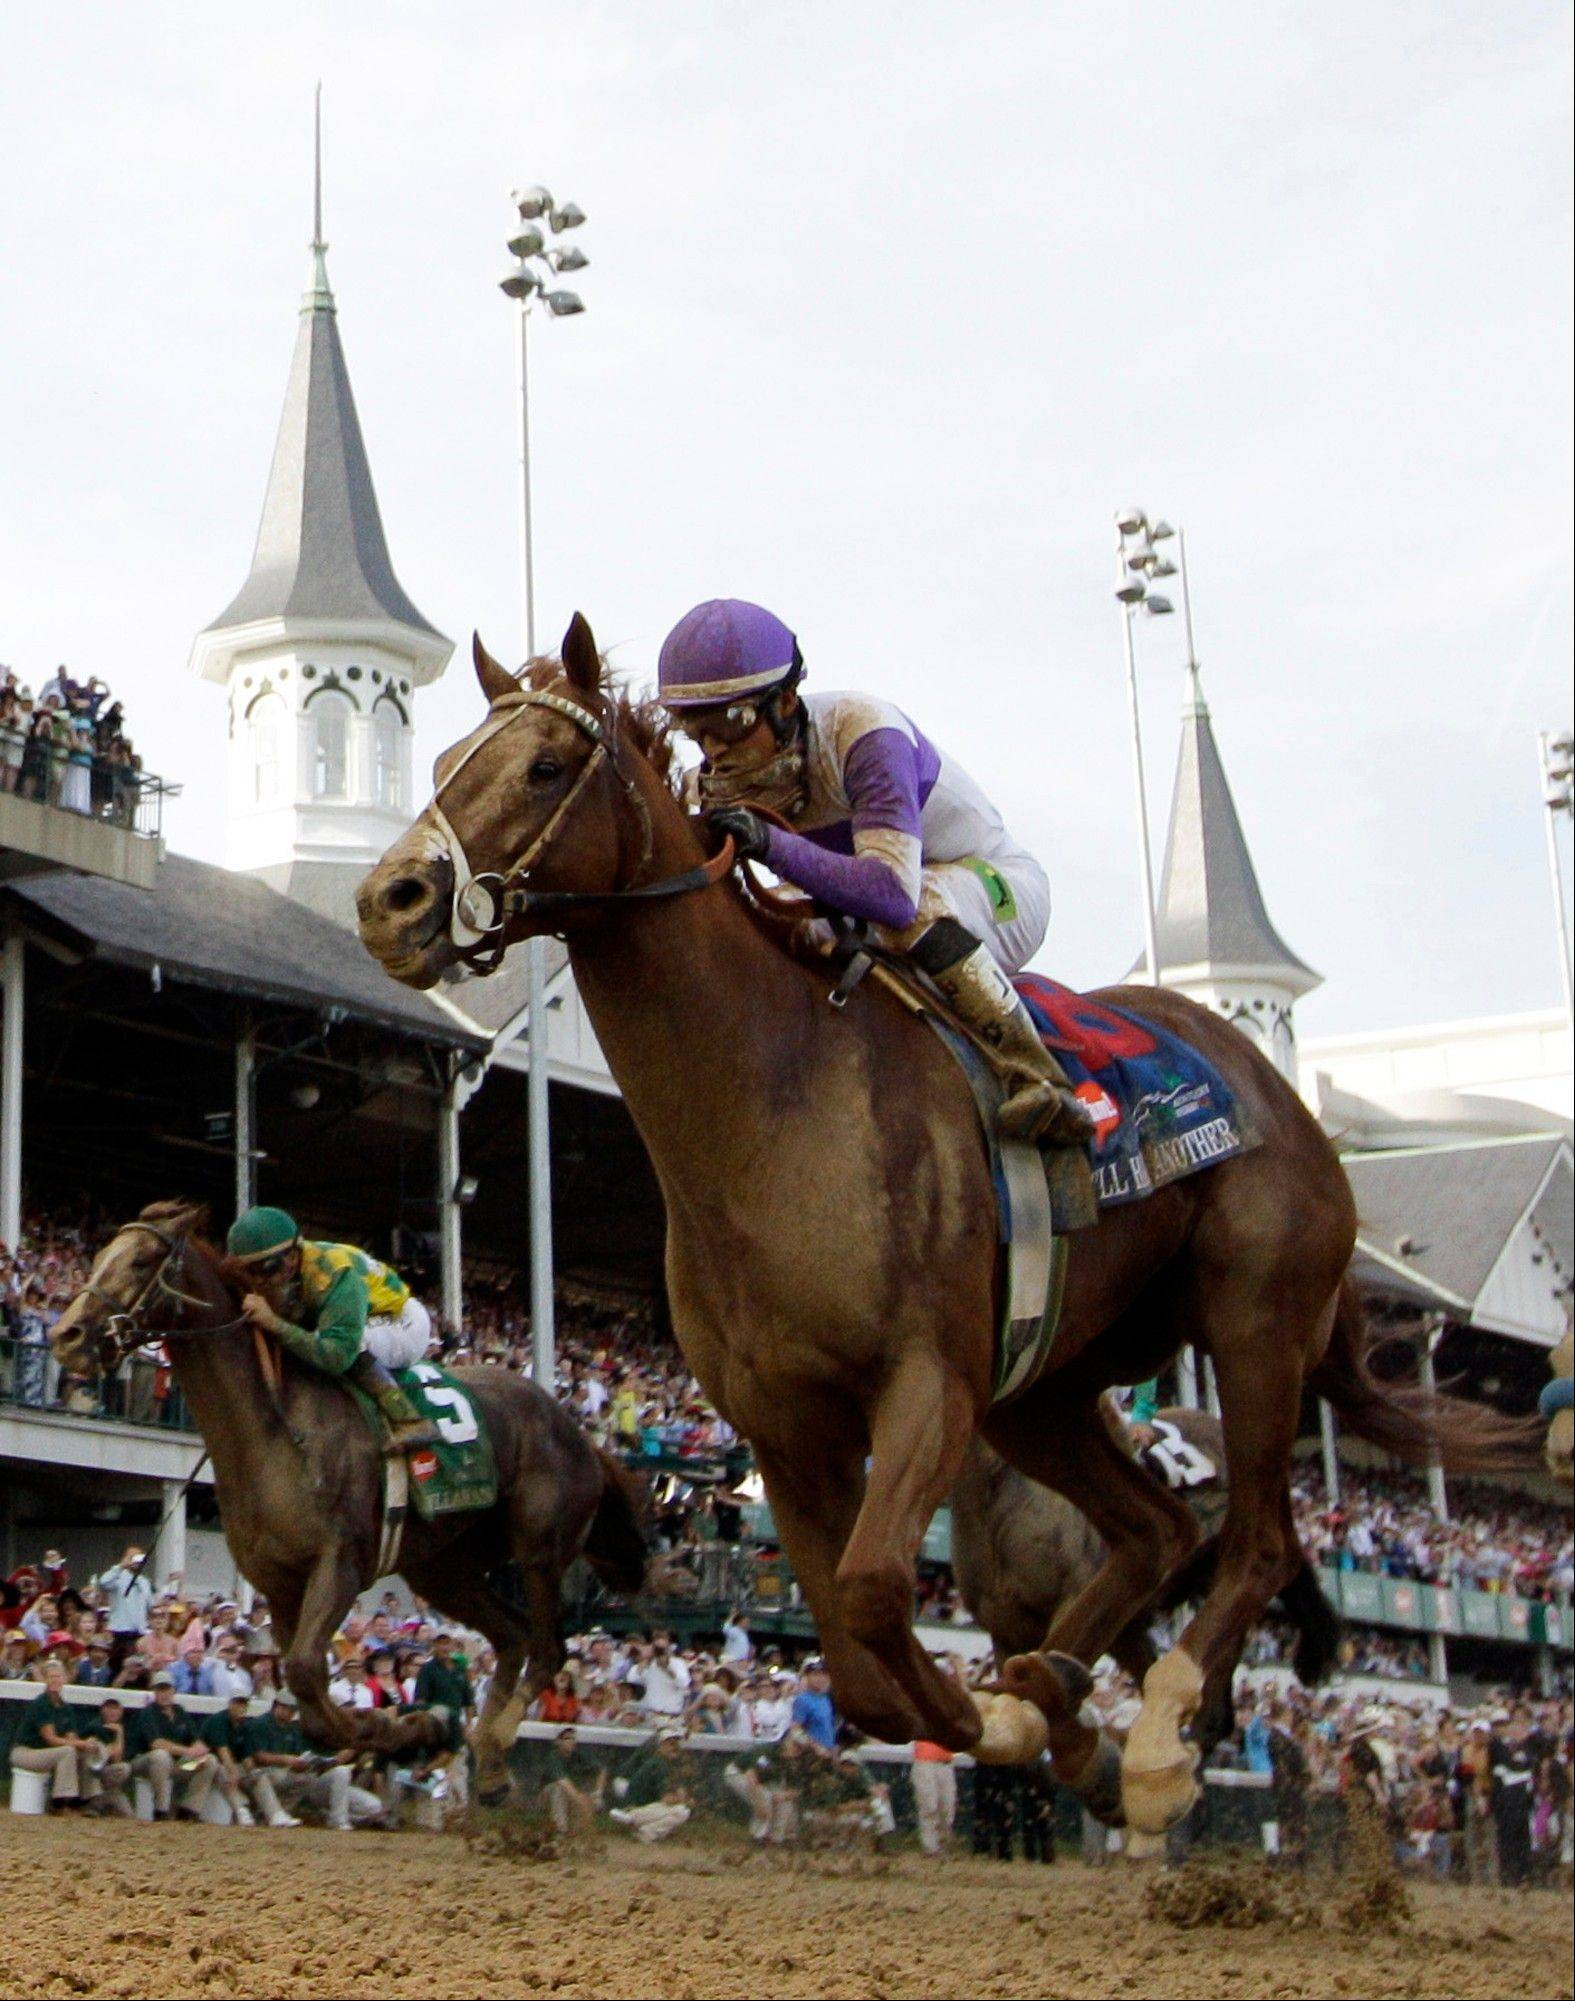 Jockey Mario Gutierrez riding I'll Have Another to victory in the 138th Kentucky Derby horse race at Churchill Downs, in Louisville, Ky. I'll Have Another's bid for a Triple Crown ended with the shocking news that the colt was out of the Belmont Stakes due to a swollen left front tendon.